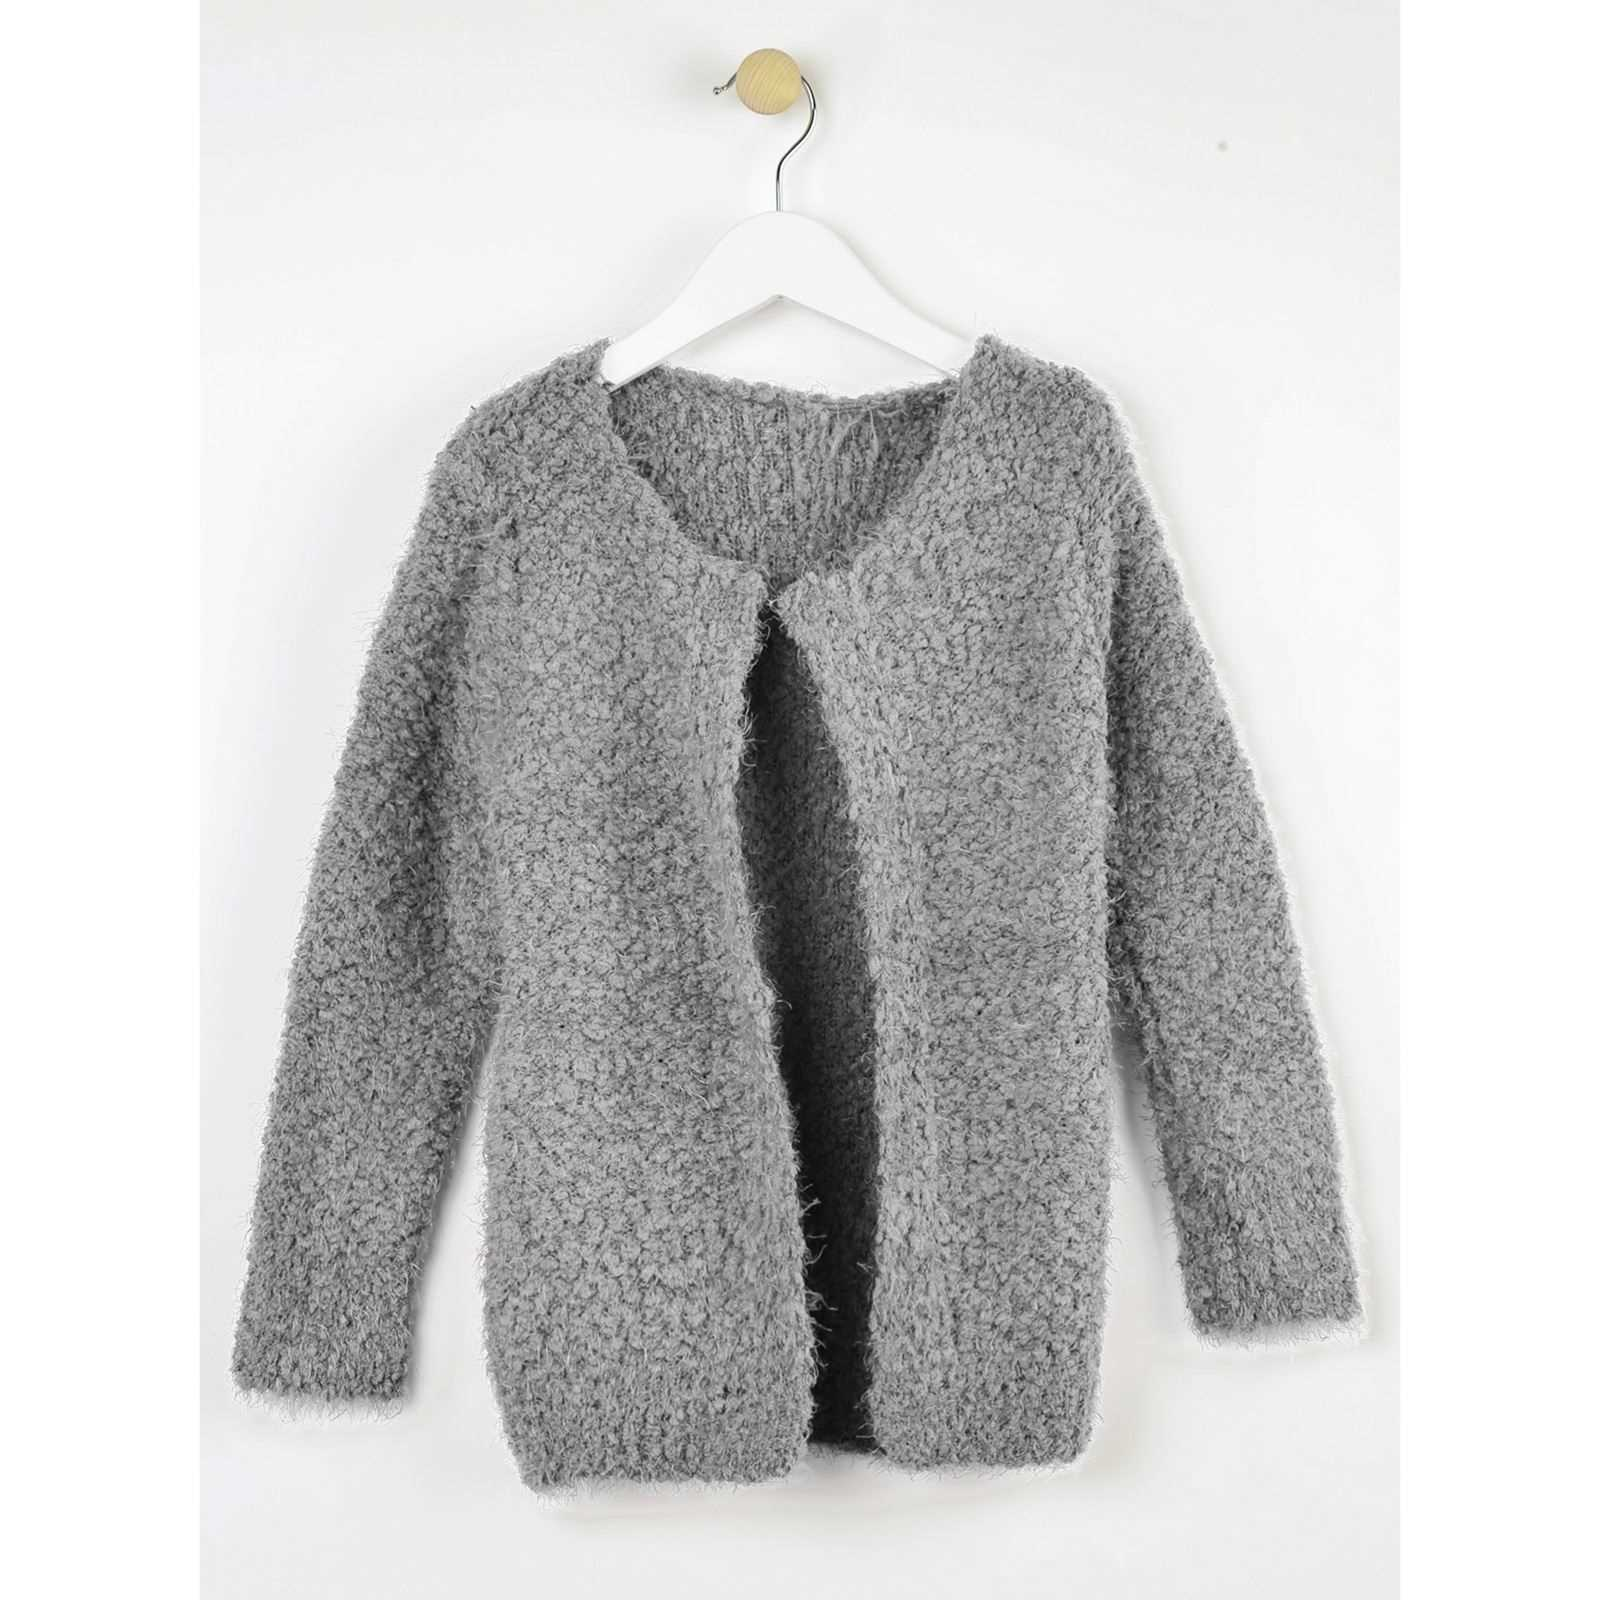 Sweet SchnittGerade Happy Sweet StrickjackeGrau Geschnitten SchnittGerade Happy StrickjackeGrau 0wPk8On